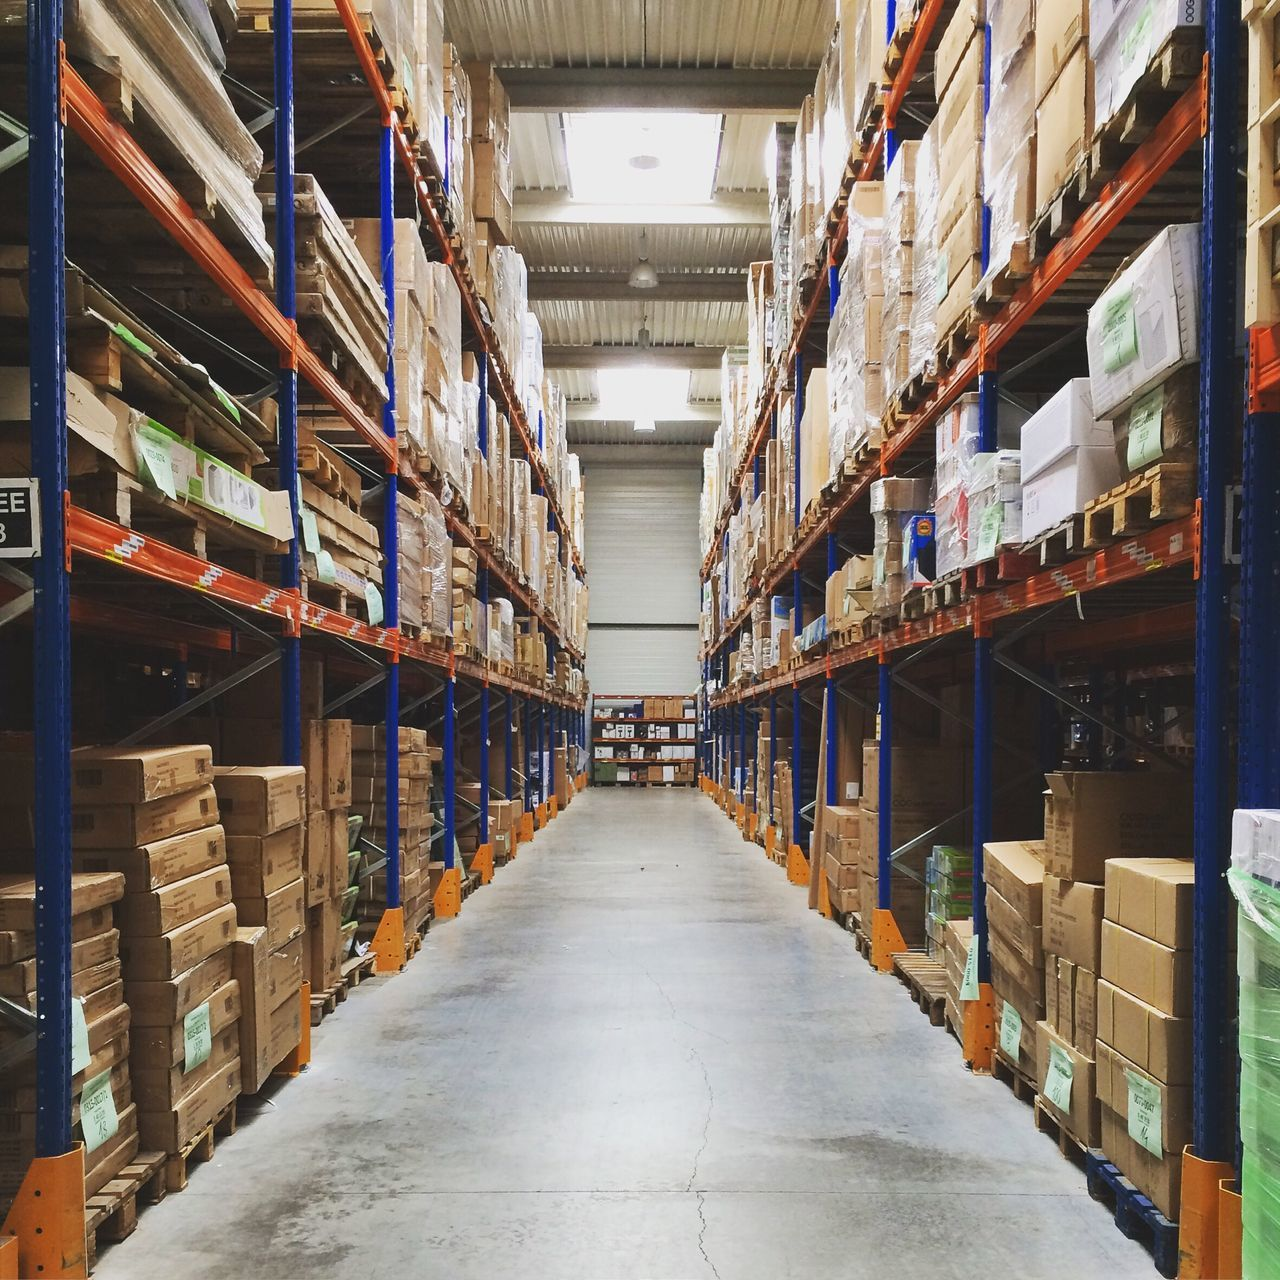 Stock | Warehouse Shelf Distribution Warehouse Industry Abundance Cardboard Box Transportation Retail  Shipping  Large Group Of Objects In A Row Business Variation Indoors  No People Cardboard Day